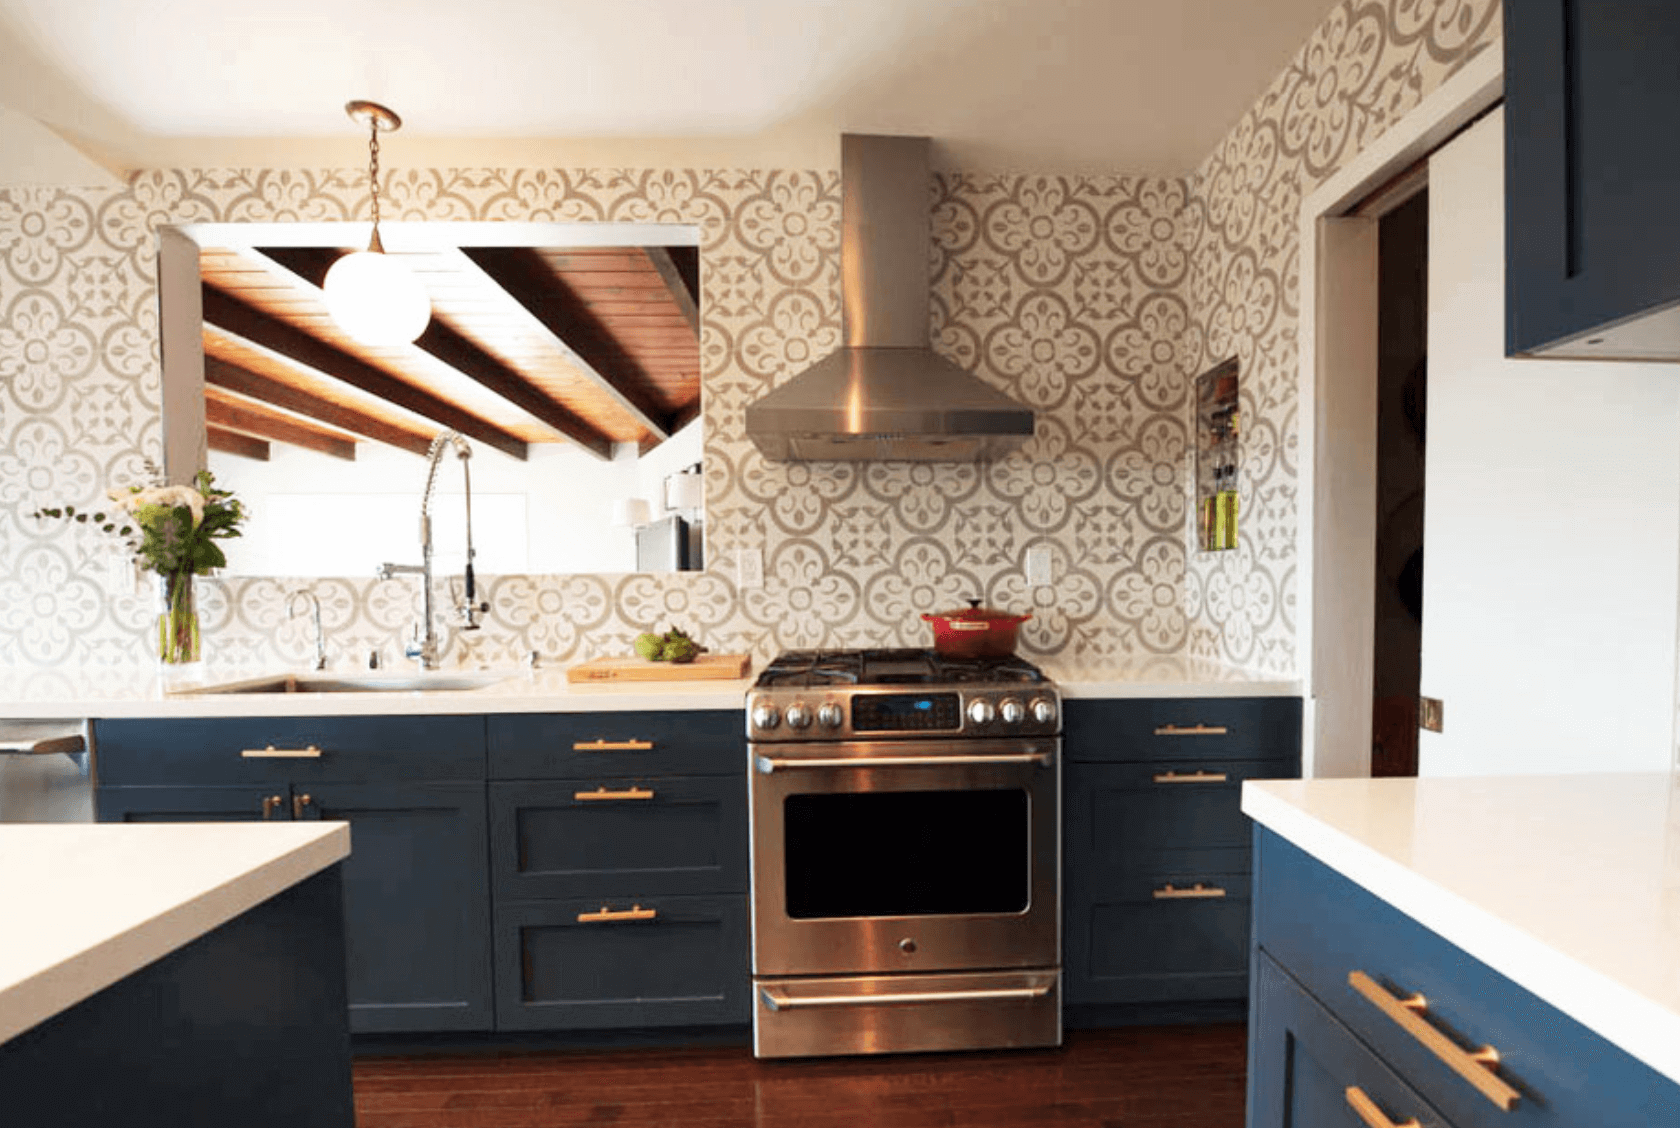 53+ Creative Kitchen Color Ideas to Make Your Space Shine